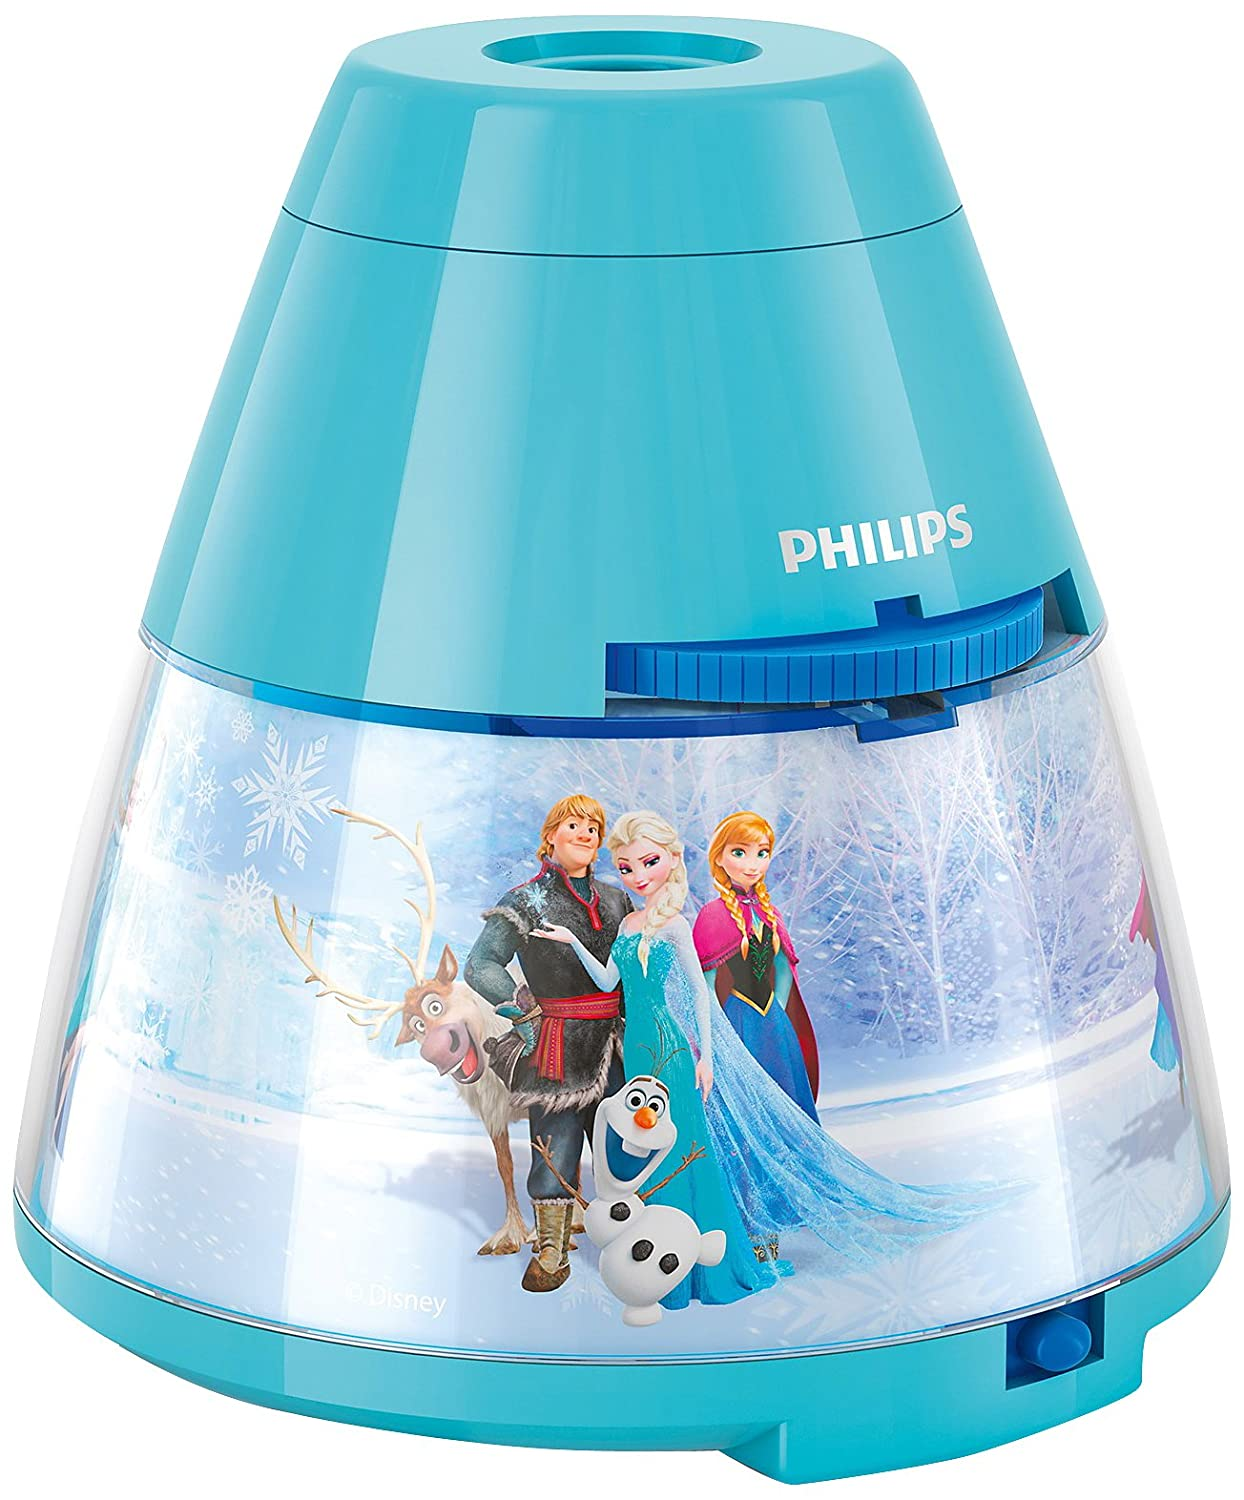 Disney frozen bedside table lamp children night light for Bedroom night light